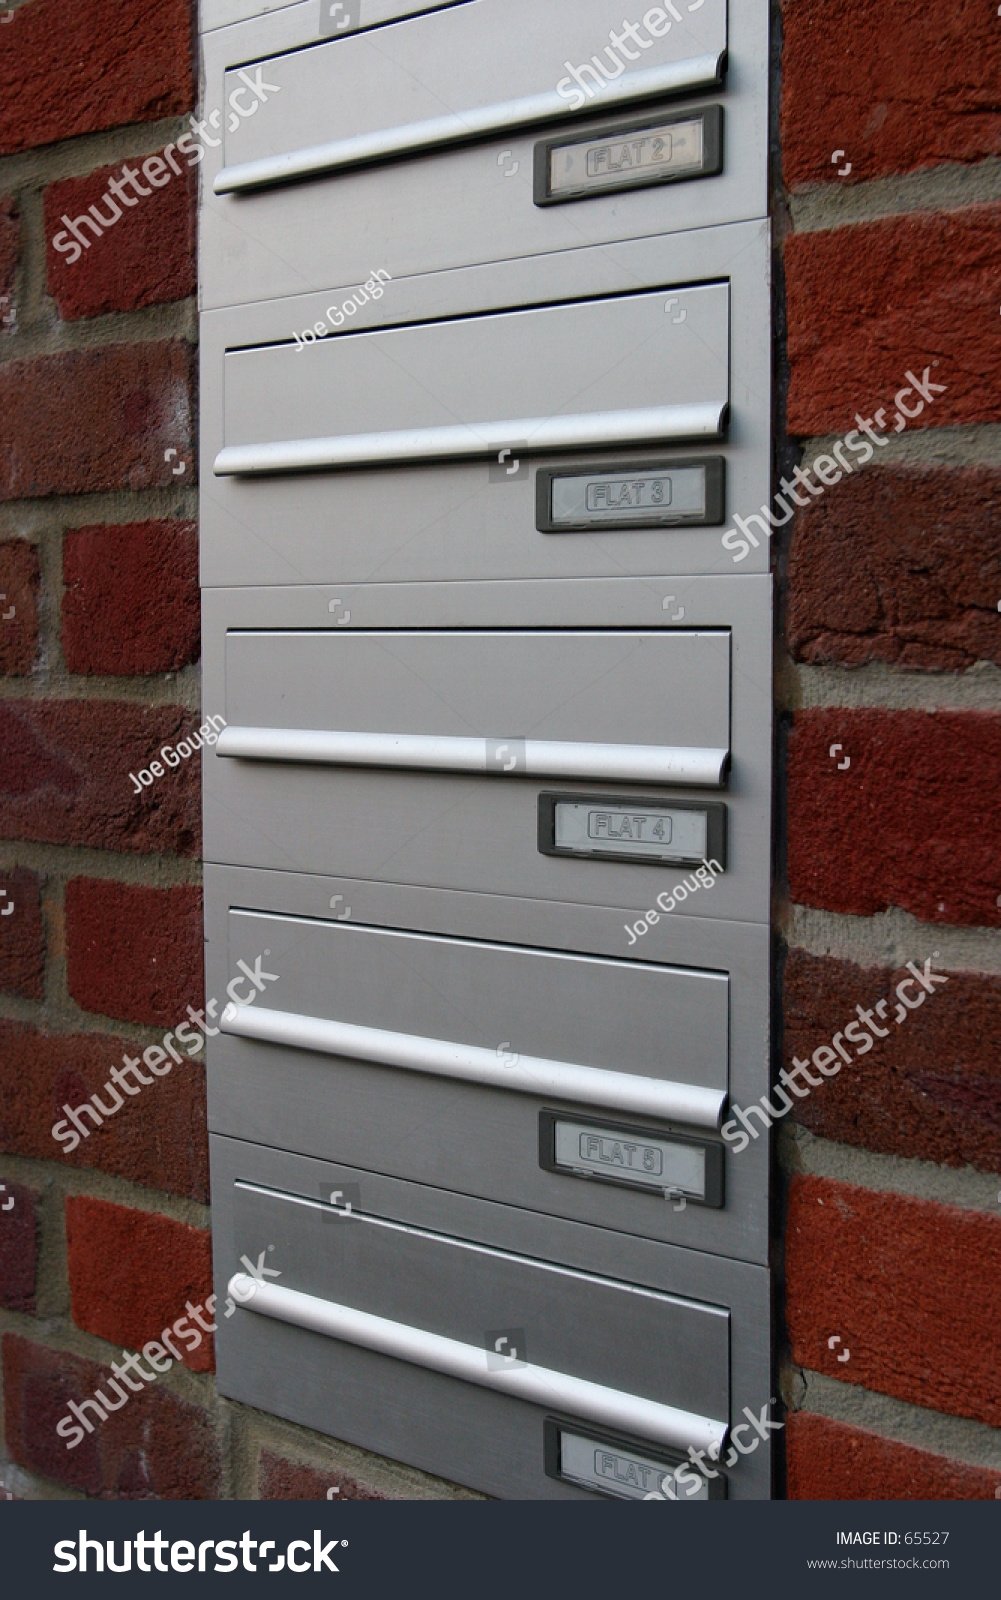 apartment mail boxes stock photo 65527 shutterstock